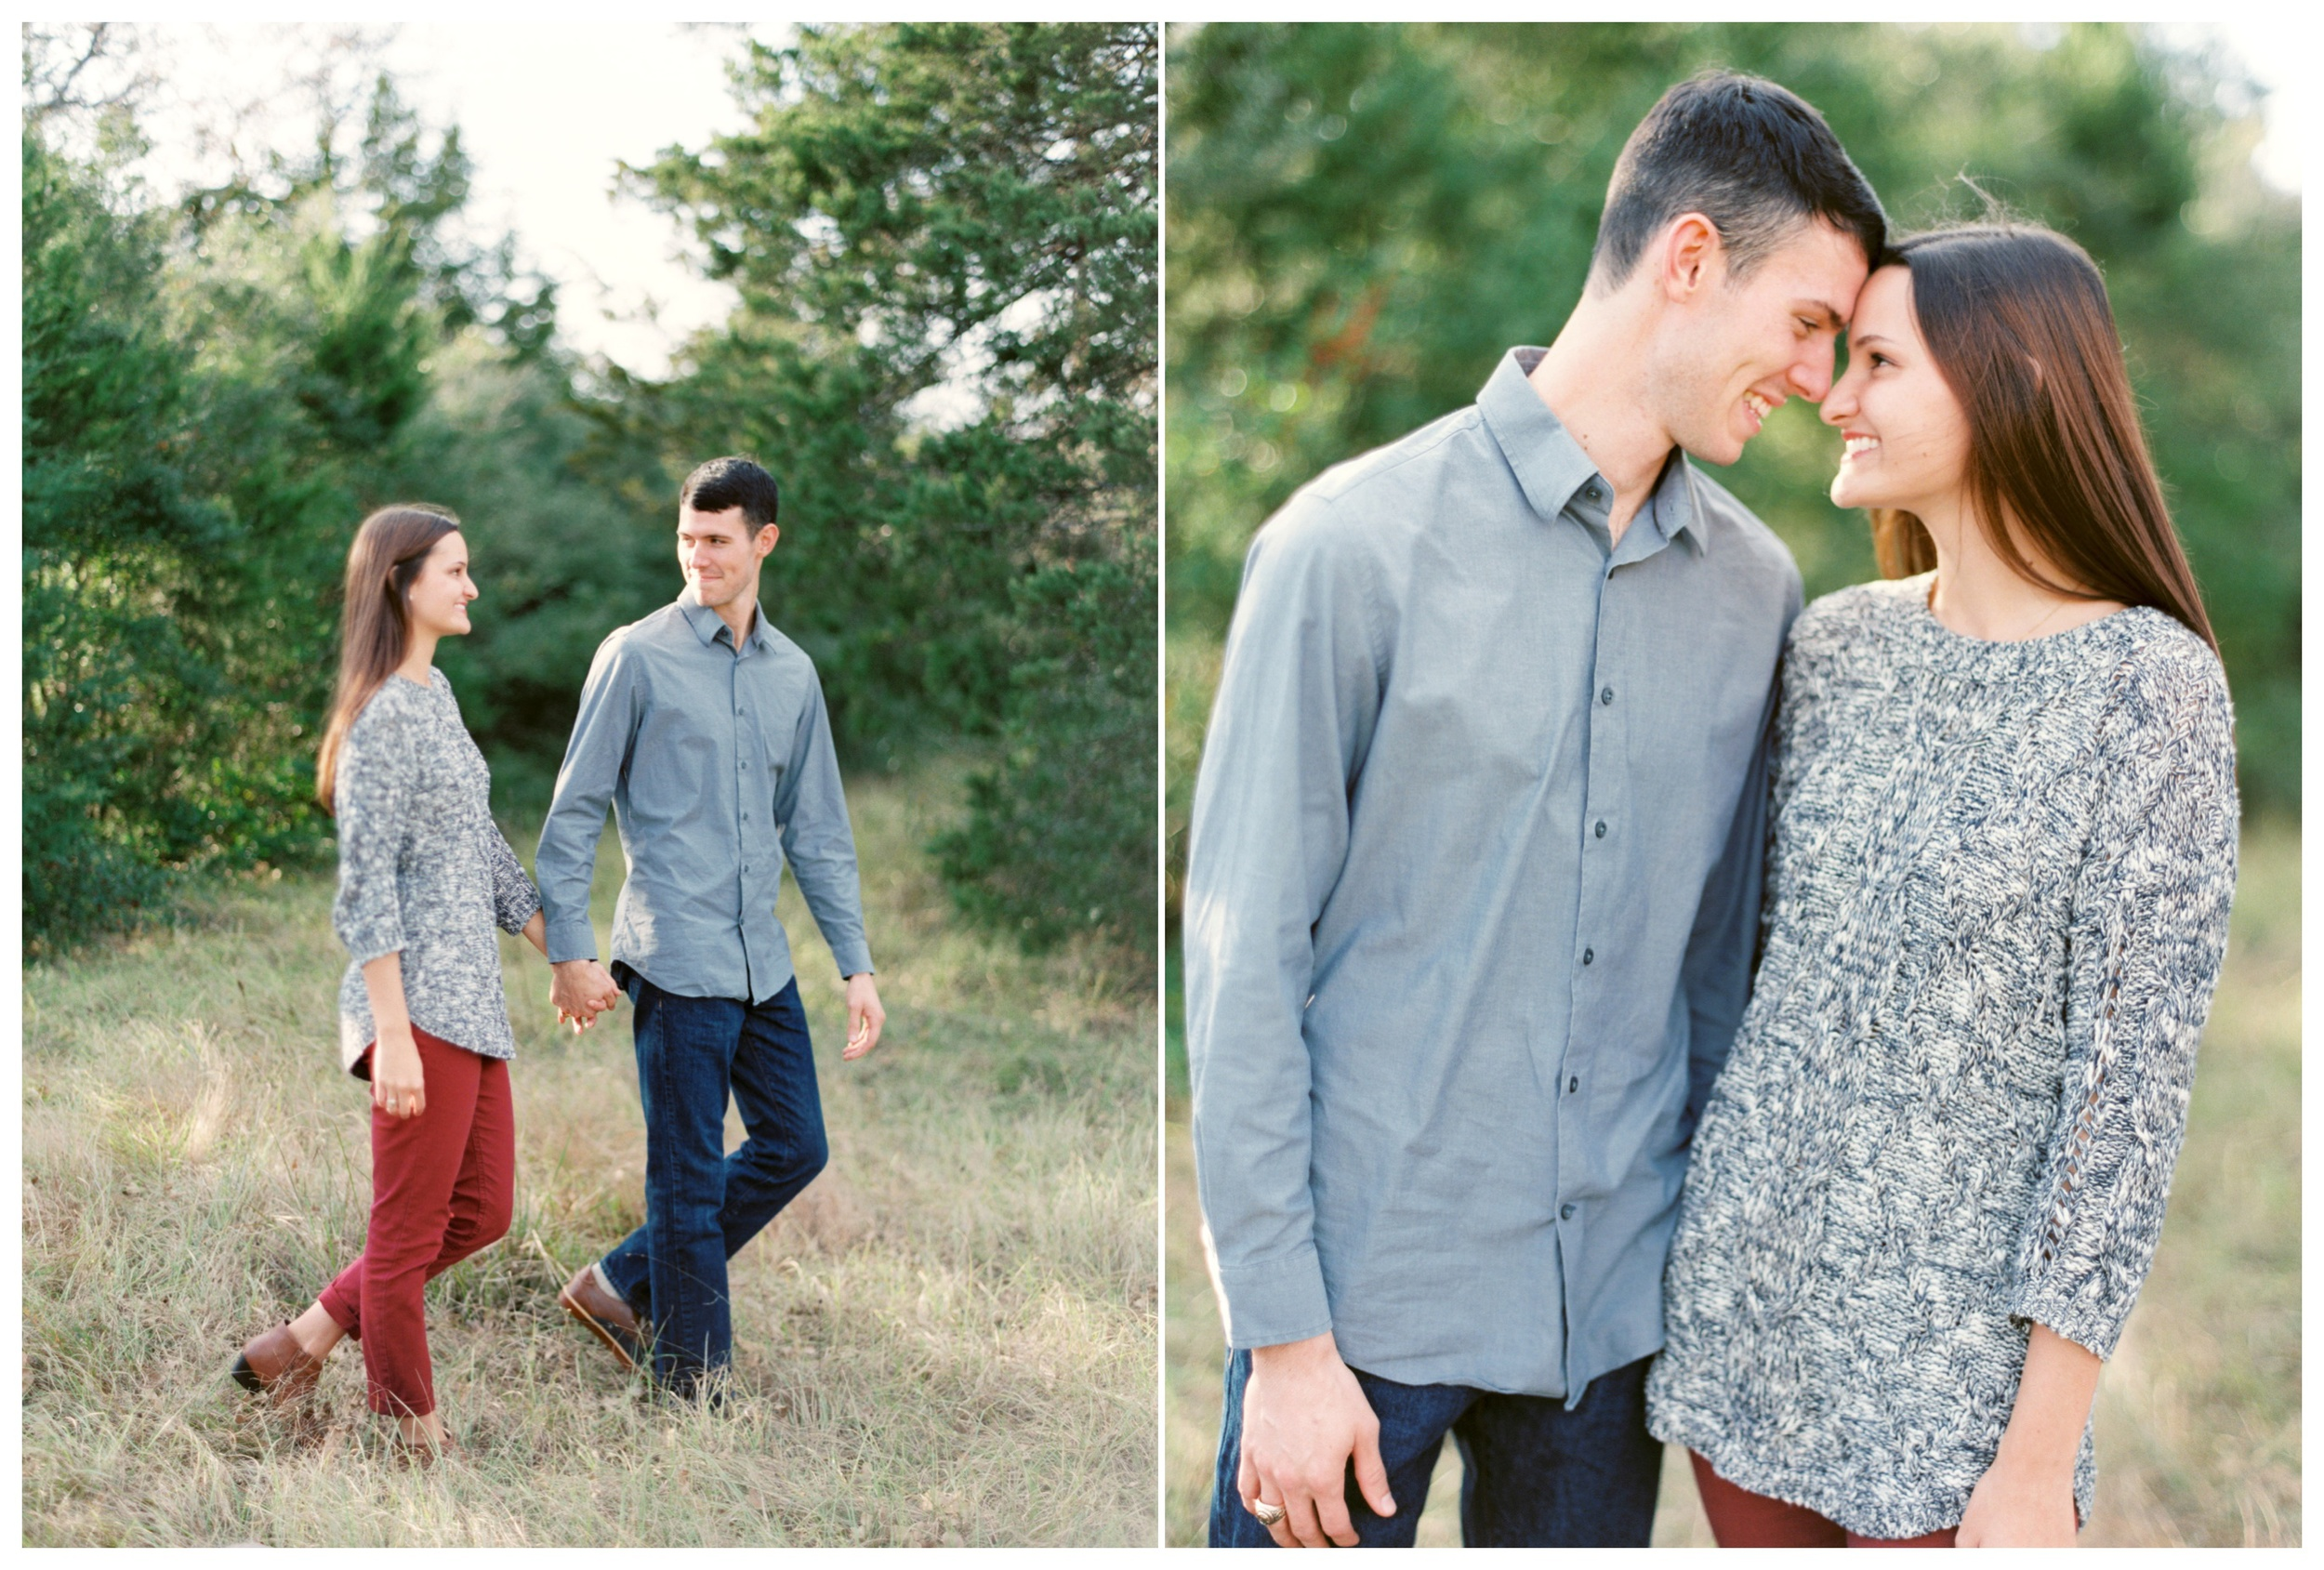 Sarah Best Photography - Brittany & Jonathan's Engagements-208_STP.jpg